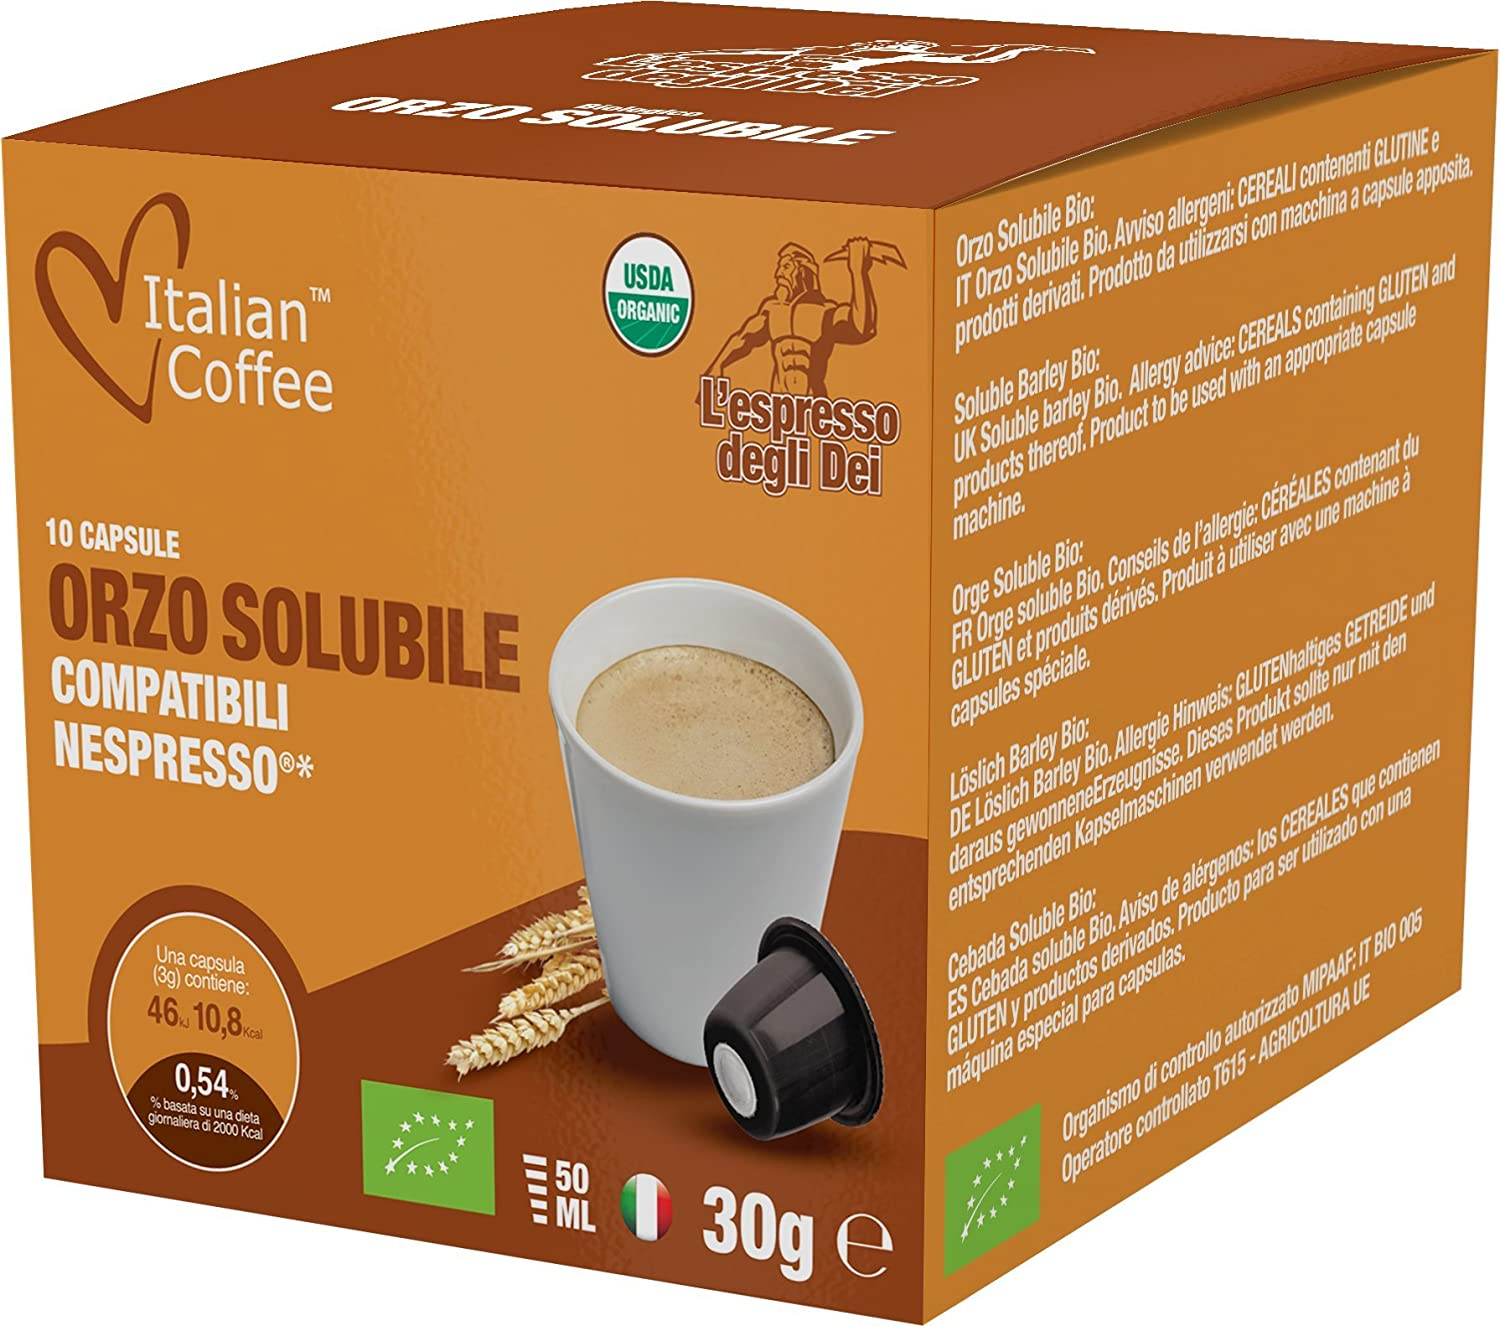 Barley capsules, Nespresso compatible pods, by Italian Coffee (Barley Drink, 30 pods): Amazon.com: Grocery & Gourmet Food